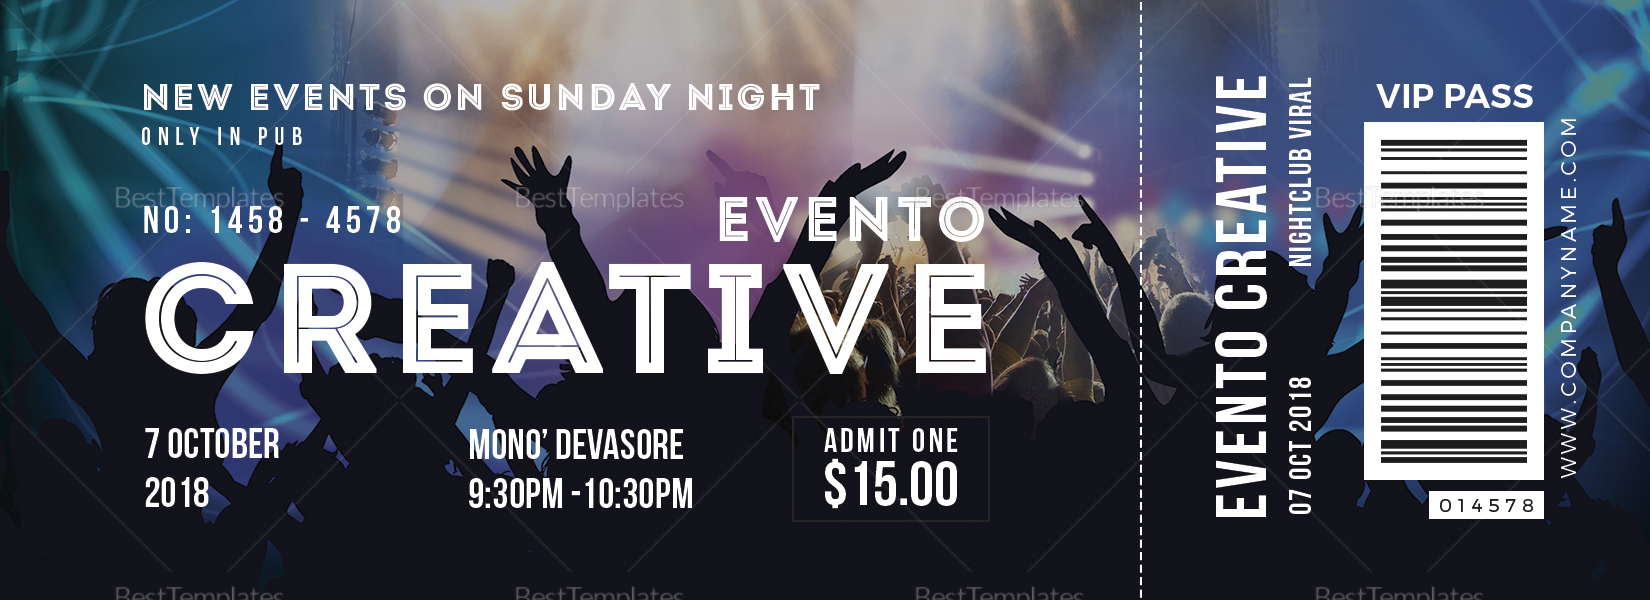 Live Event Ticket Template; Live Event Ticket Design Template  Event Ticket Template